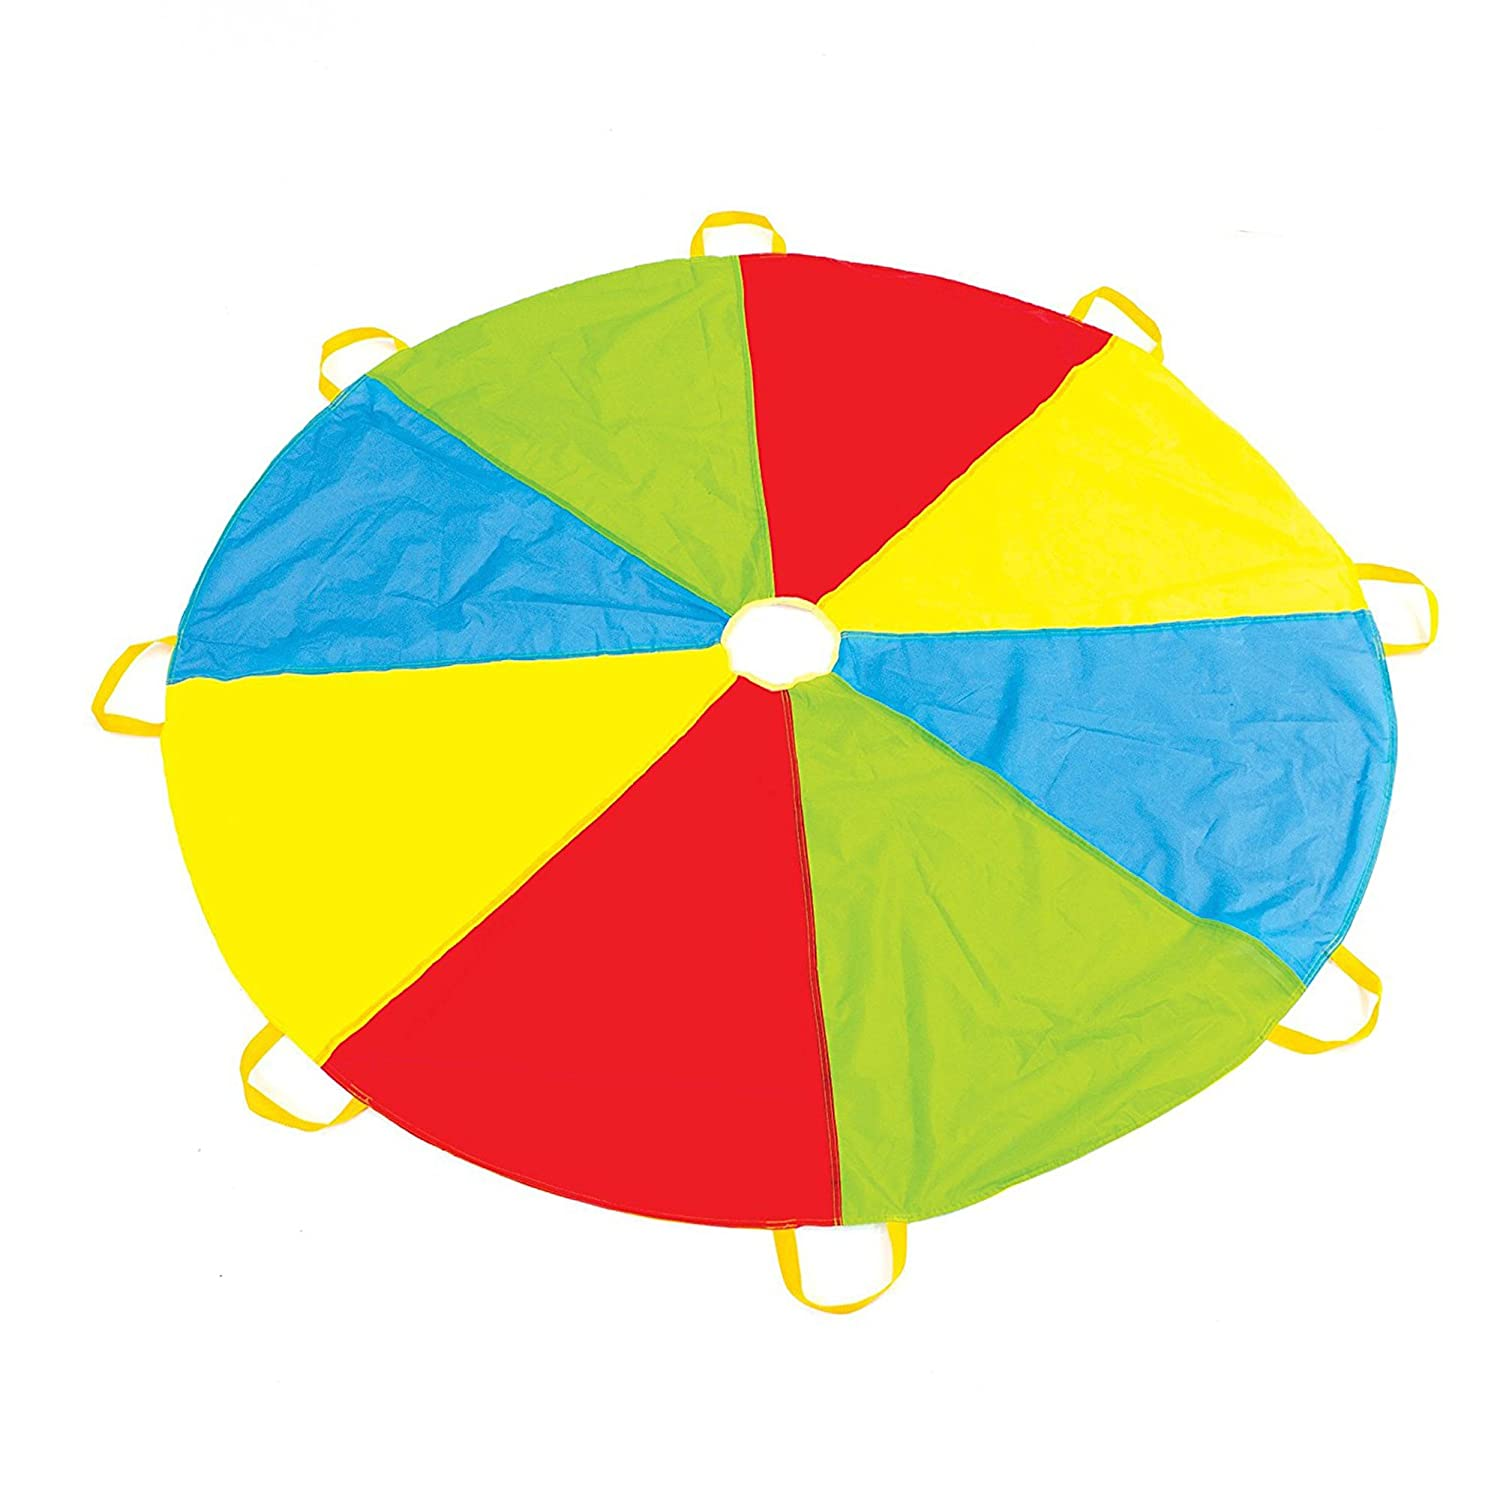 6 Foot Play Parachute with 8 Handles - Multicolored Parachute for Kids Play Platoon